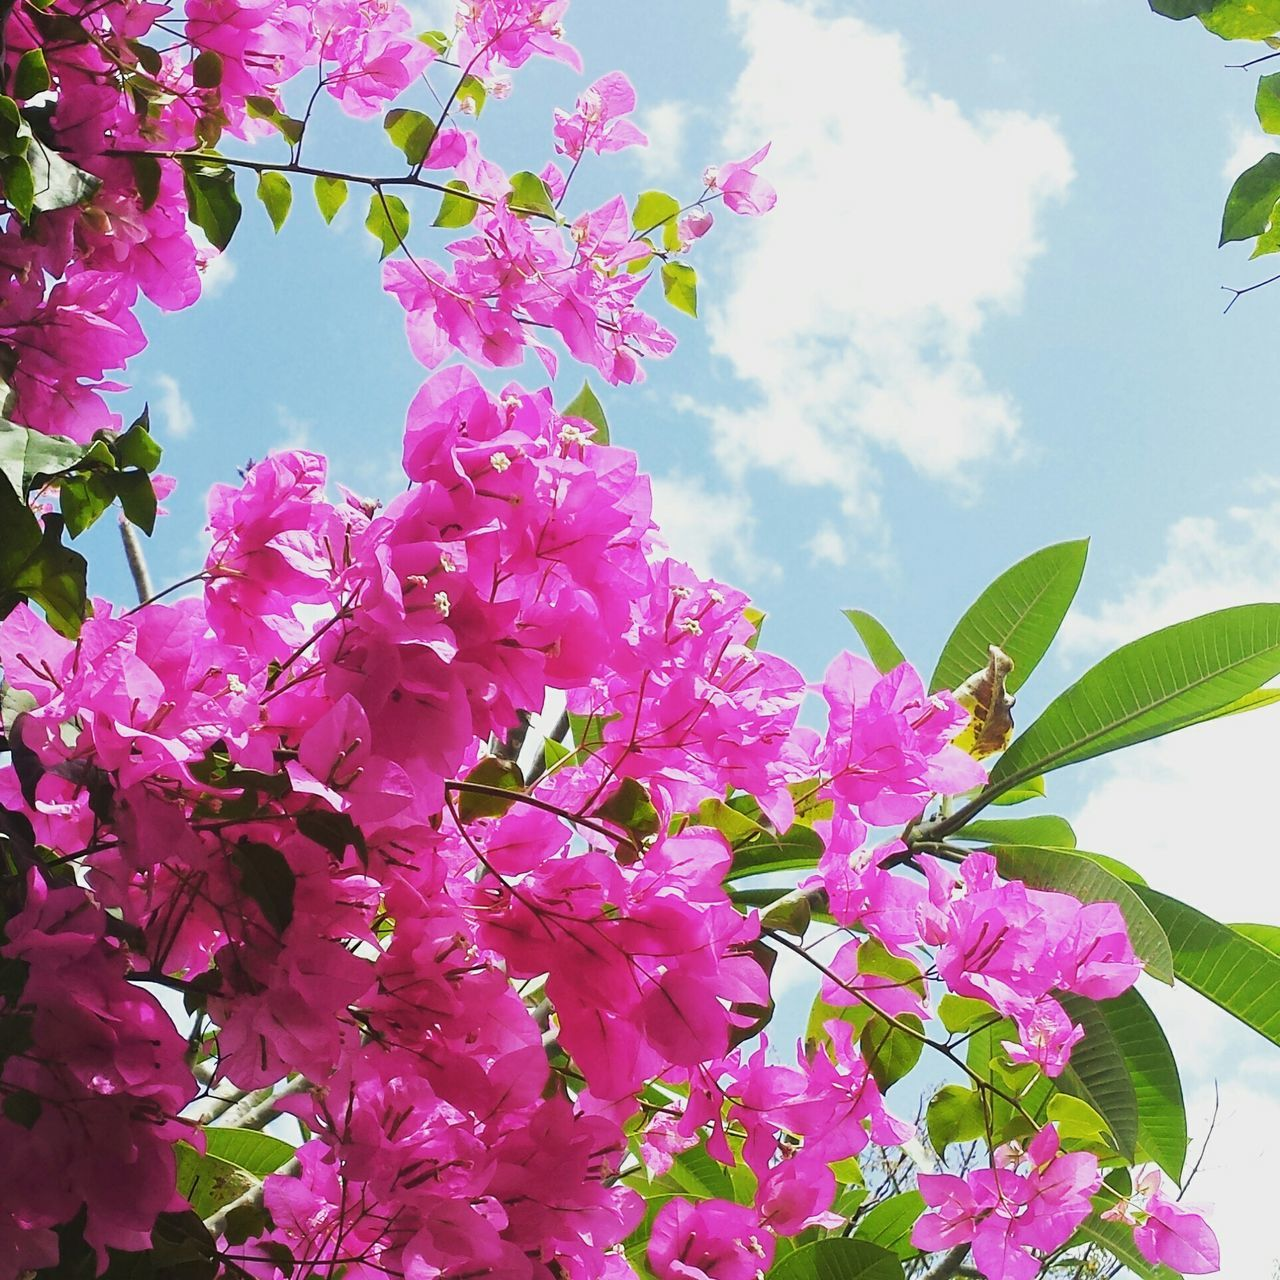 Low Angle View Of Pink Bougainvillea Growing Against Cloudy Sky